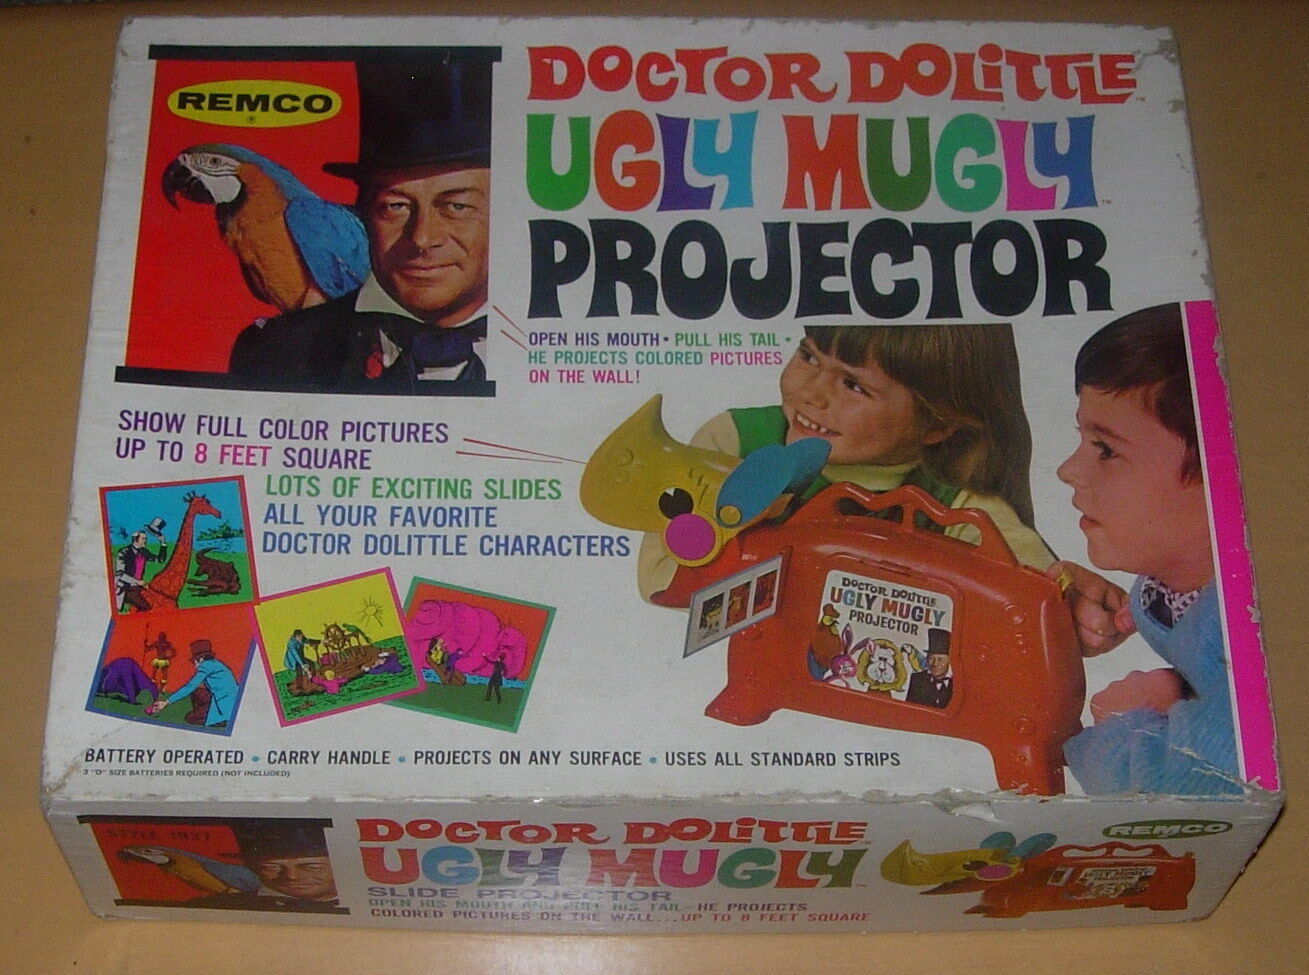 REMCO  UGLY MUGLY PROJECTOR  DOCTOR DOCTOR DOCTOR DOLITTLE  1968  BOXED 7bf121